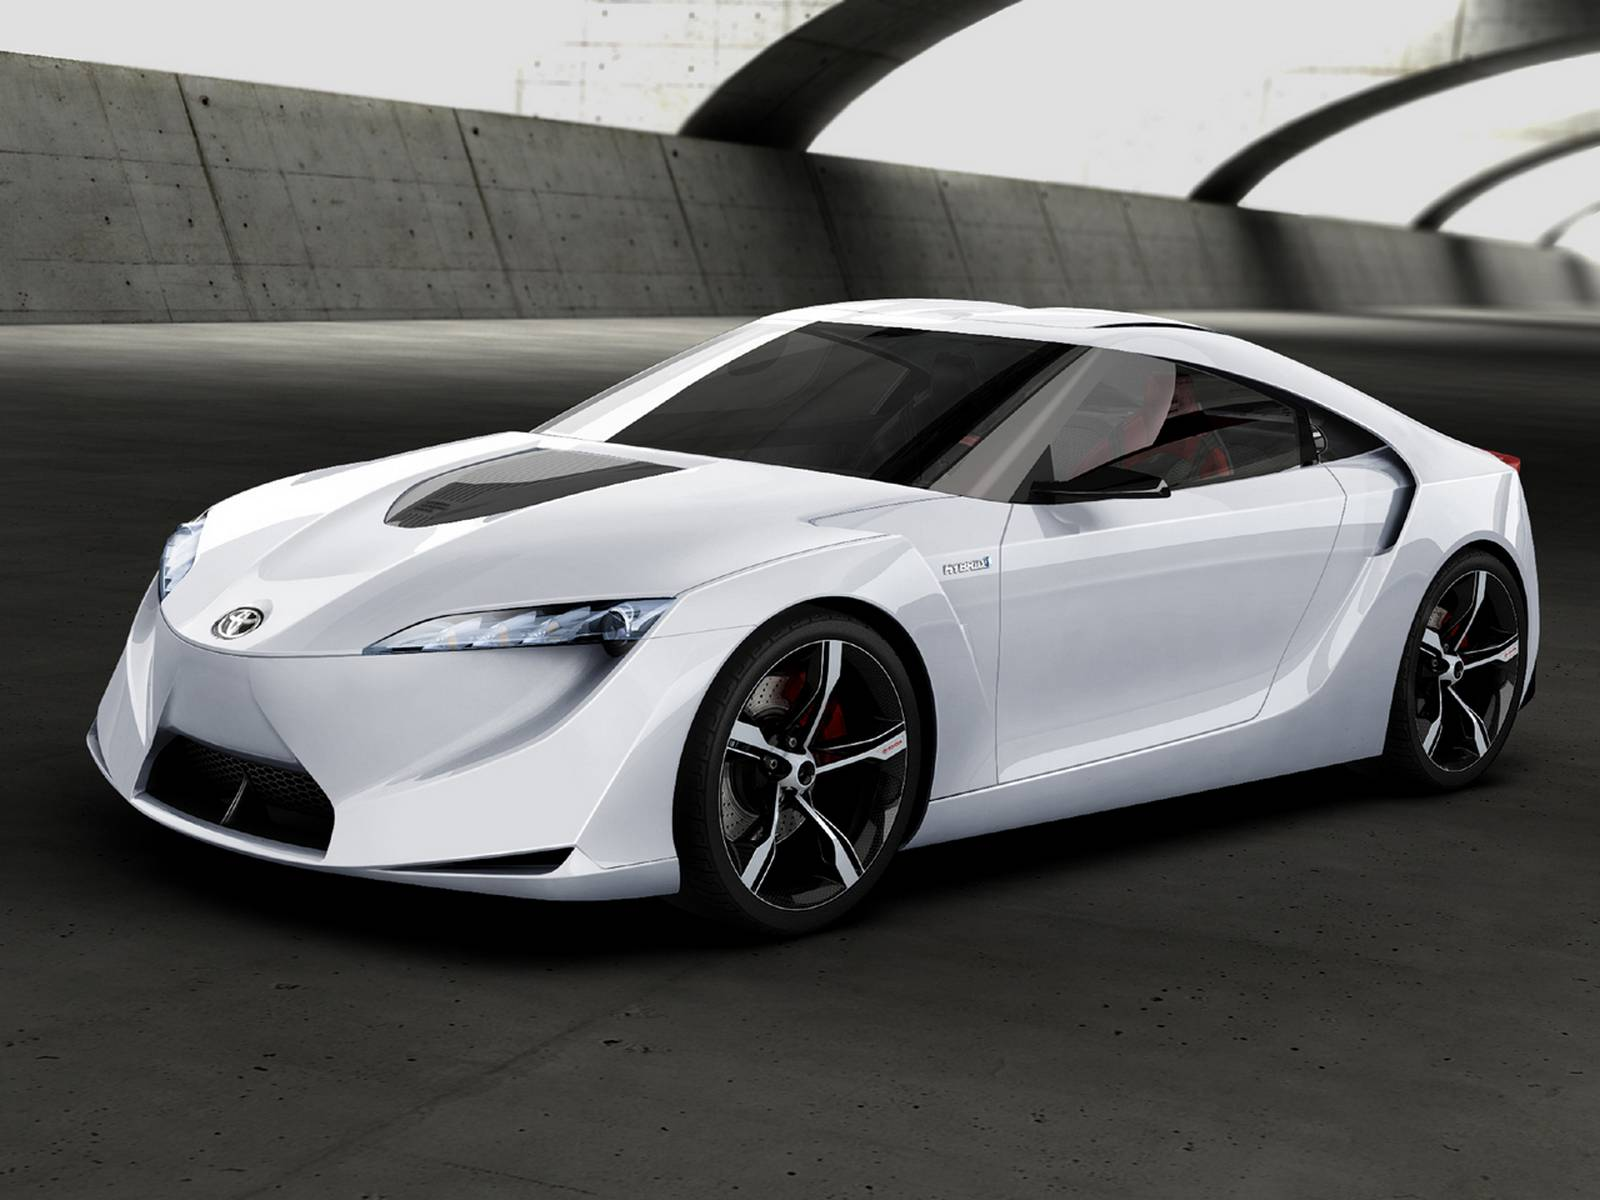 Toyota Supra Successor Could Be Heading To Detroit 2014